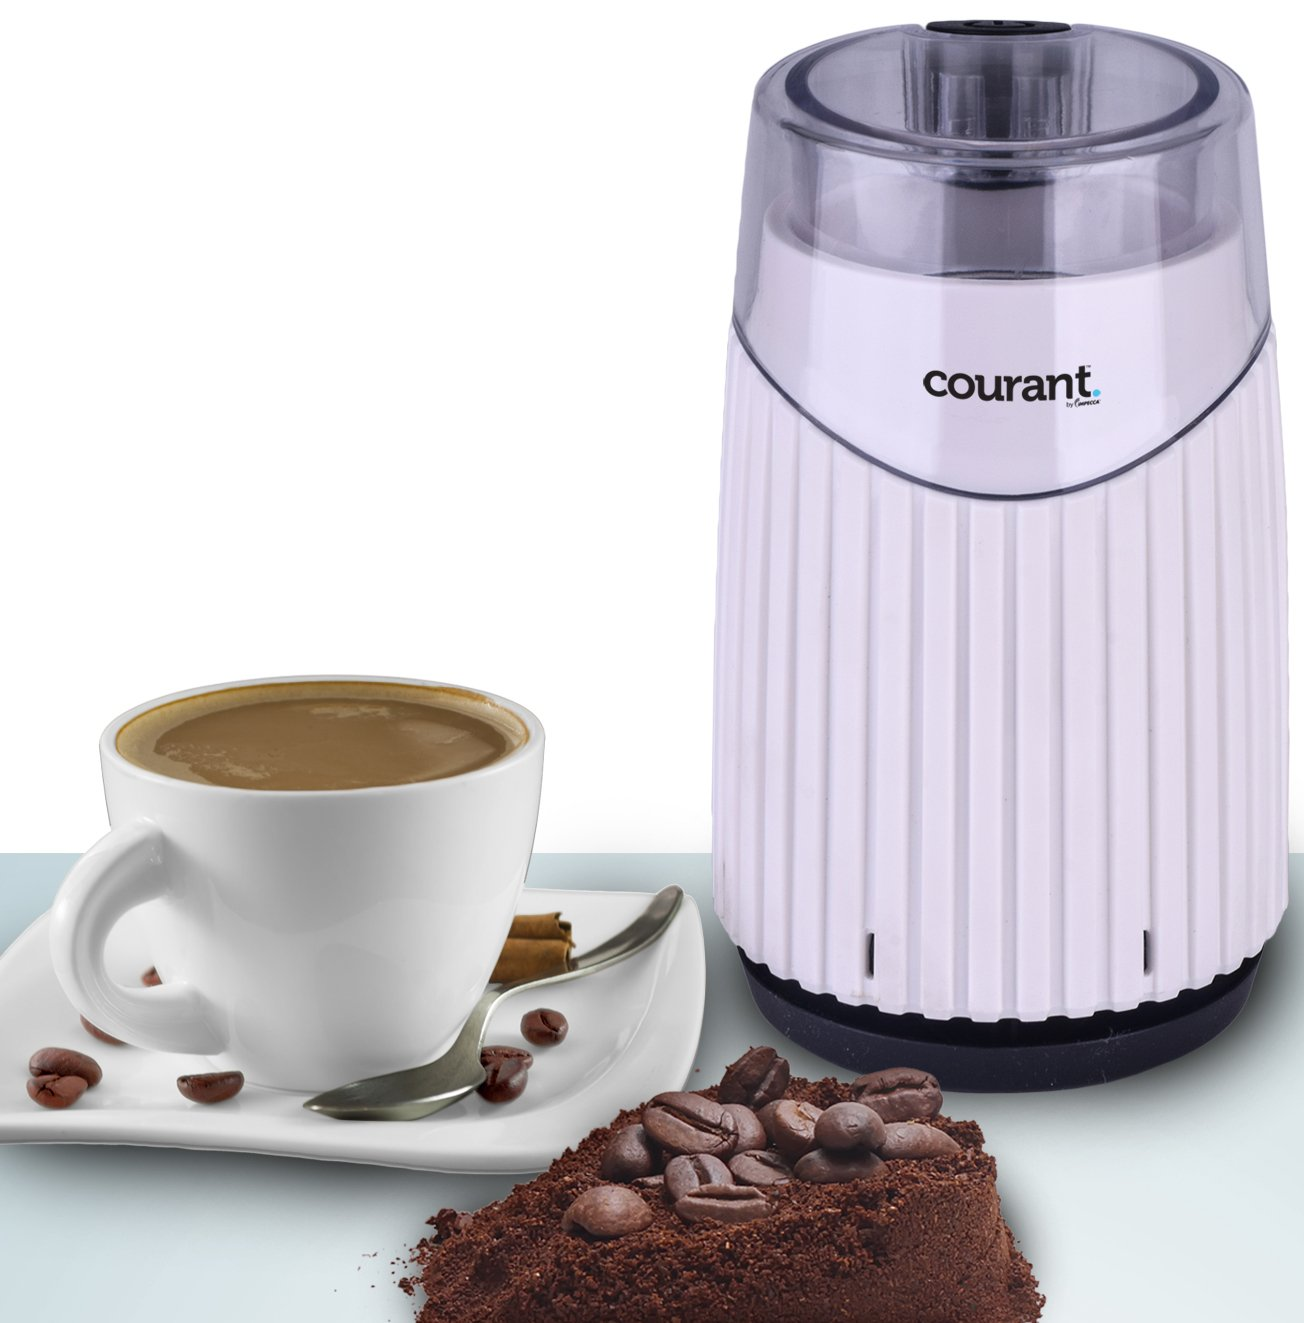 Courant Electric Coffee Grinder, Stainless steel bowl and blades Grinds Coffee Beans & Spices, White